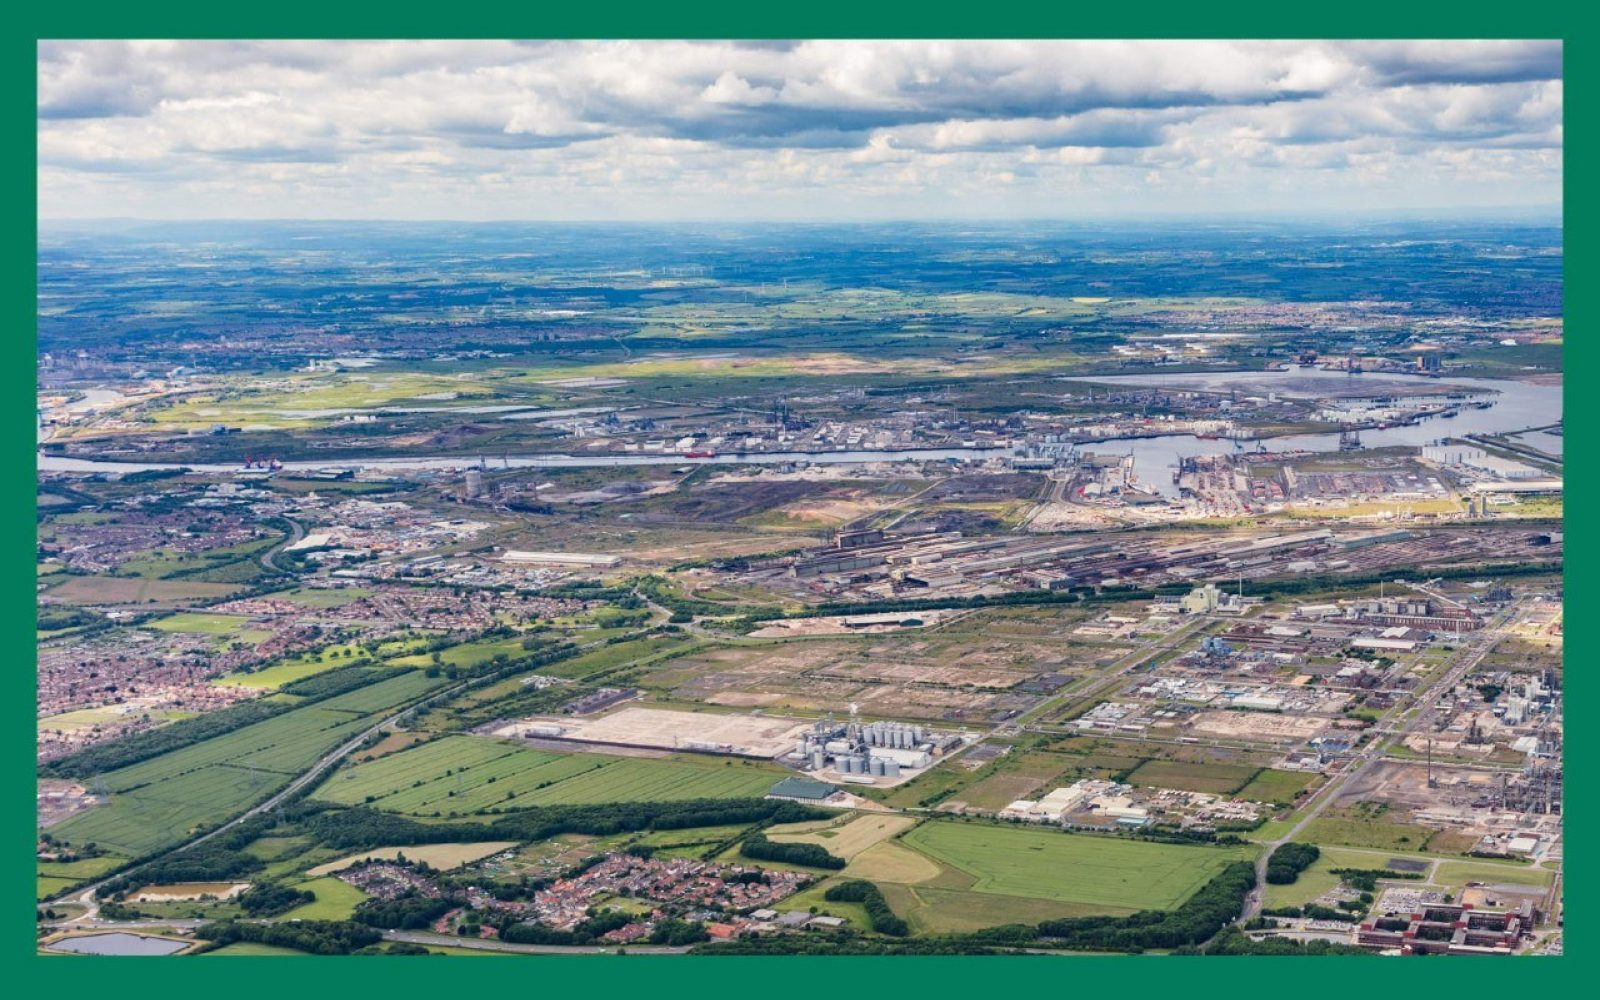 Sembcorps Wilton International, Teesside site, where the Whitetail NET Power plant will be constructed. Image: Sembcorp.